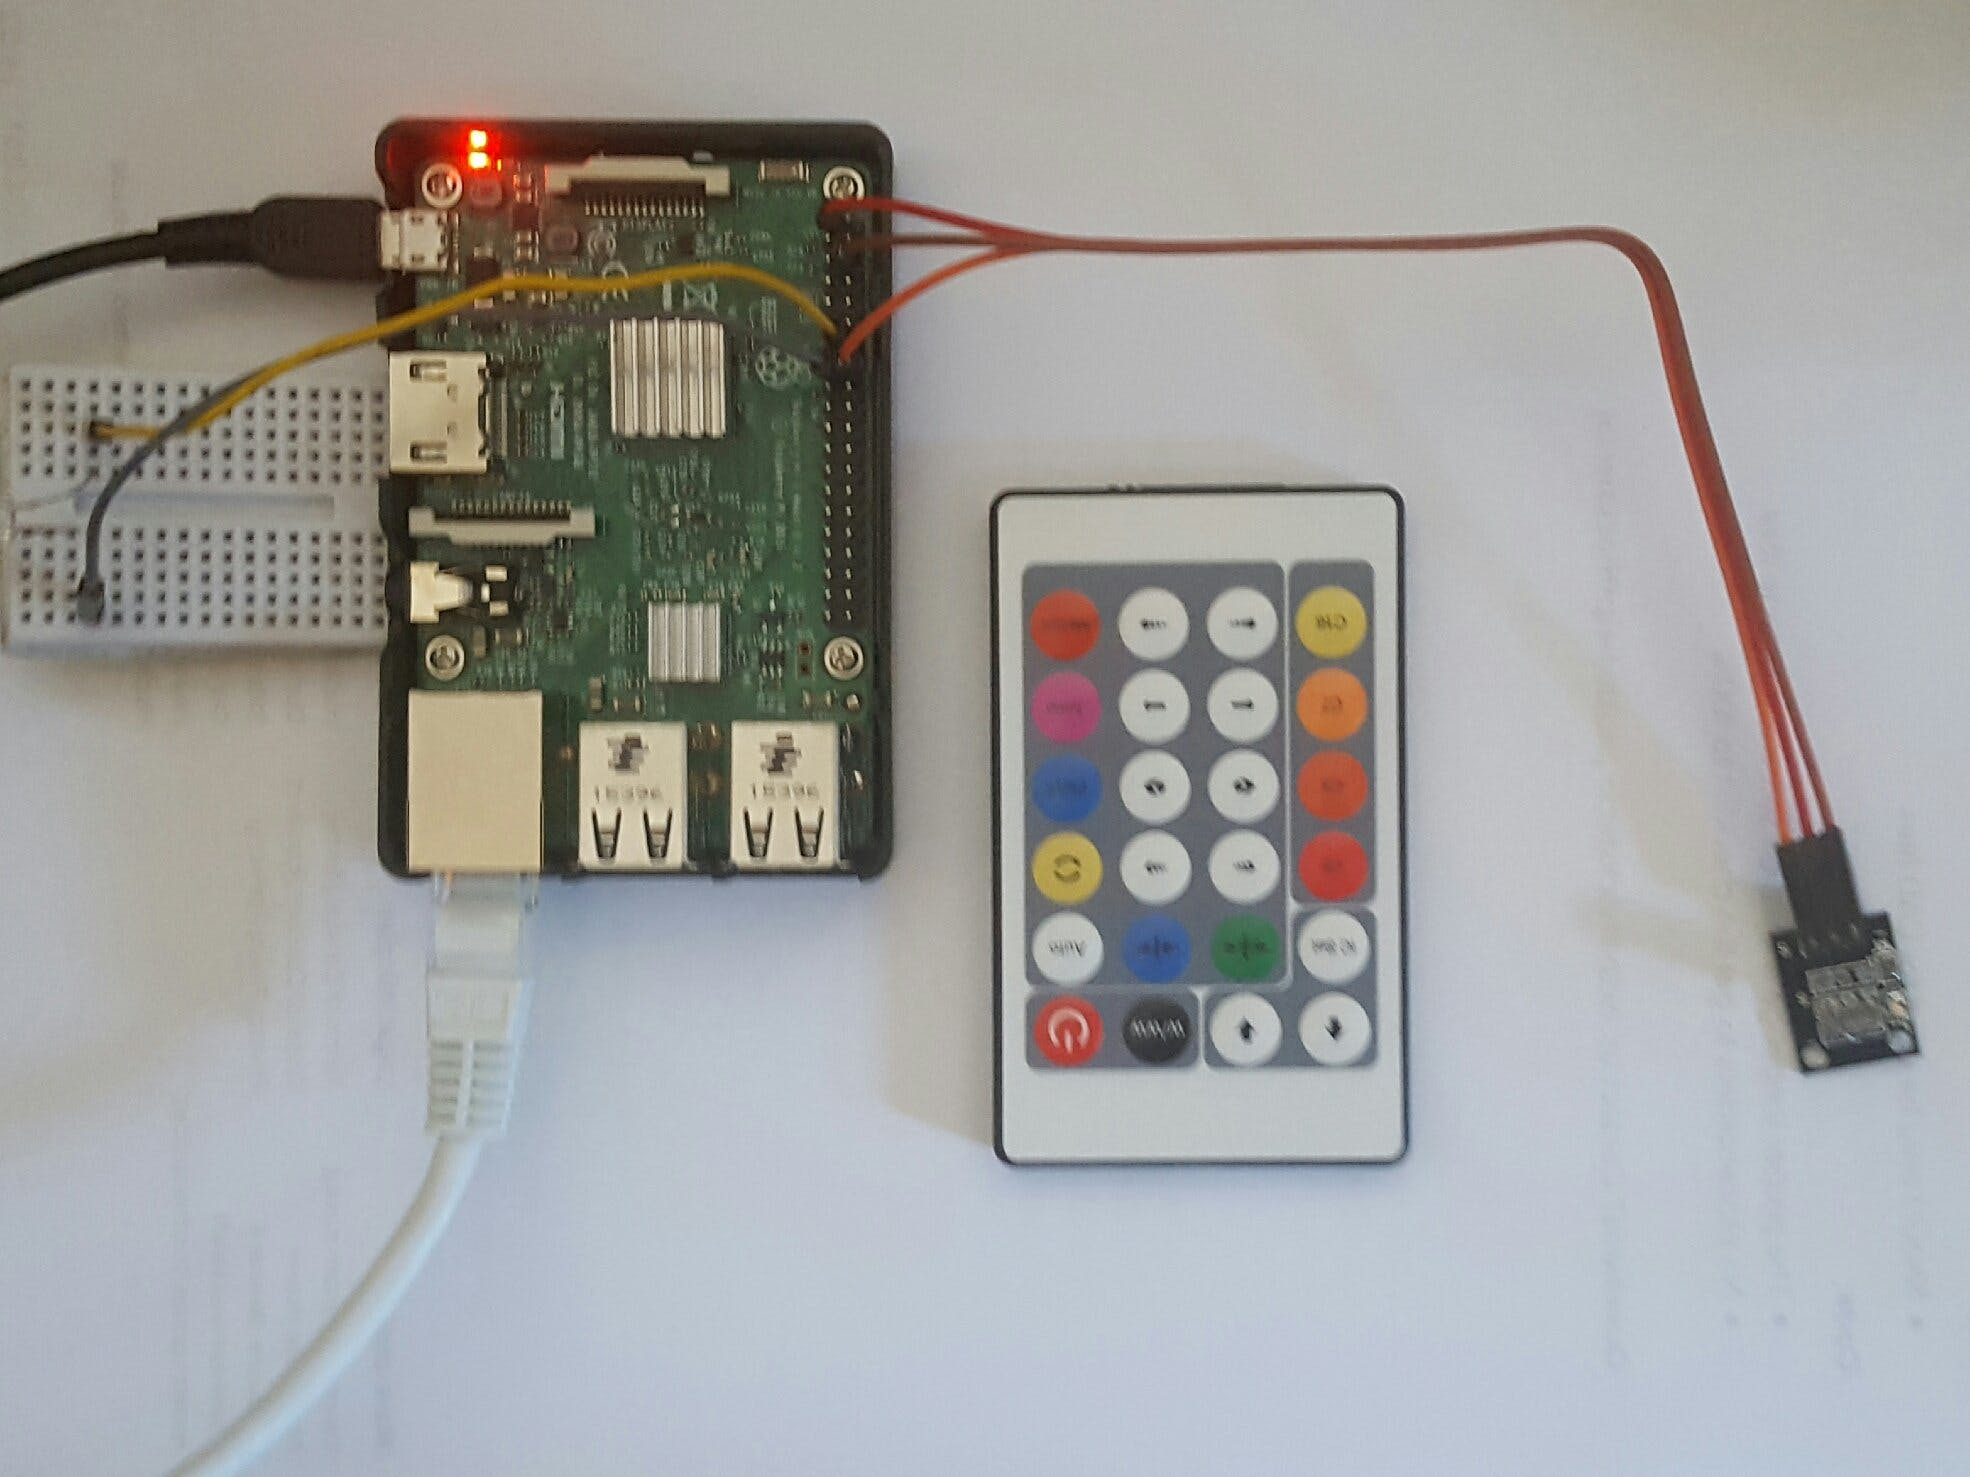 Non-RGB LED Strip control with Web UI